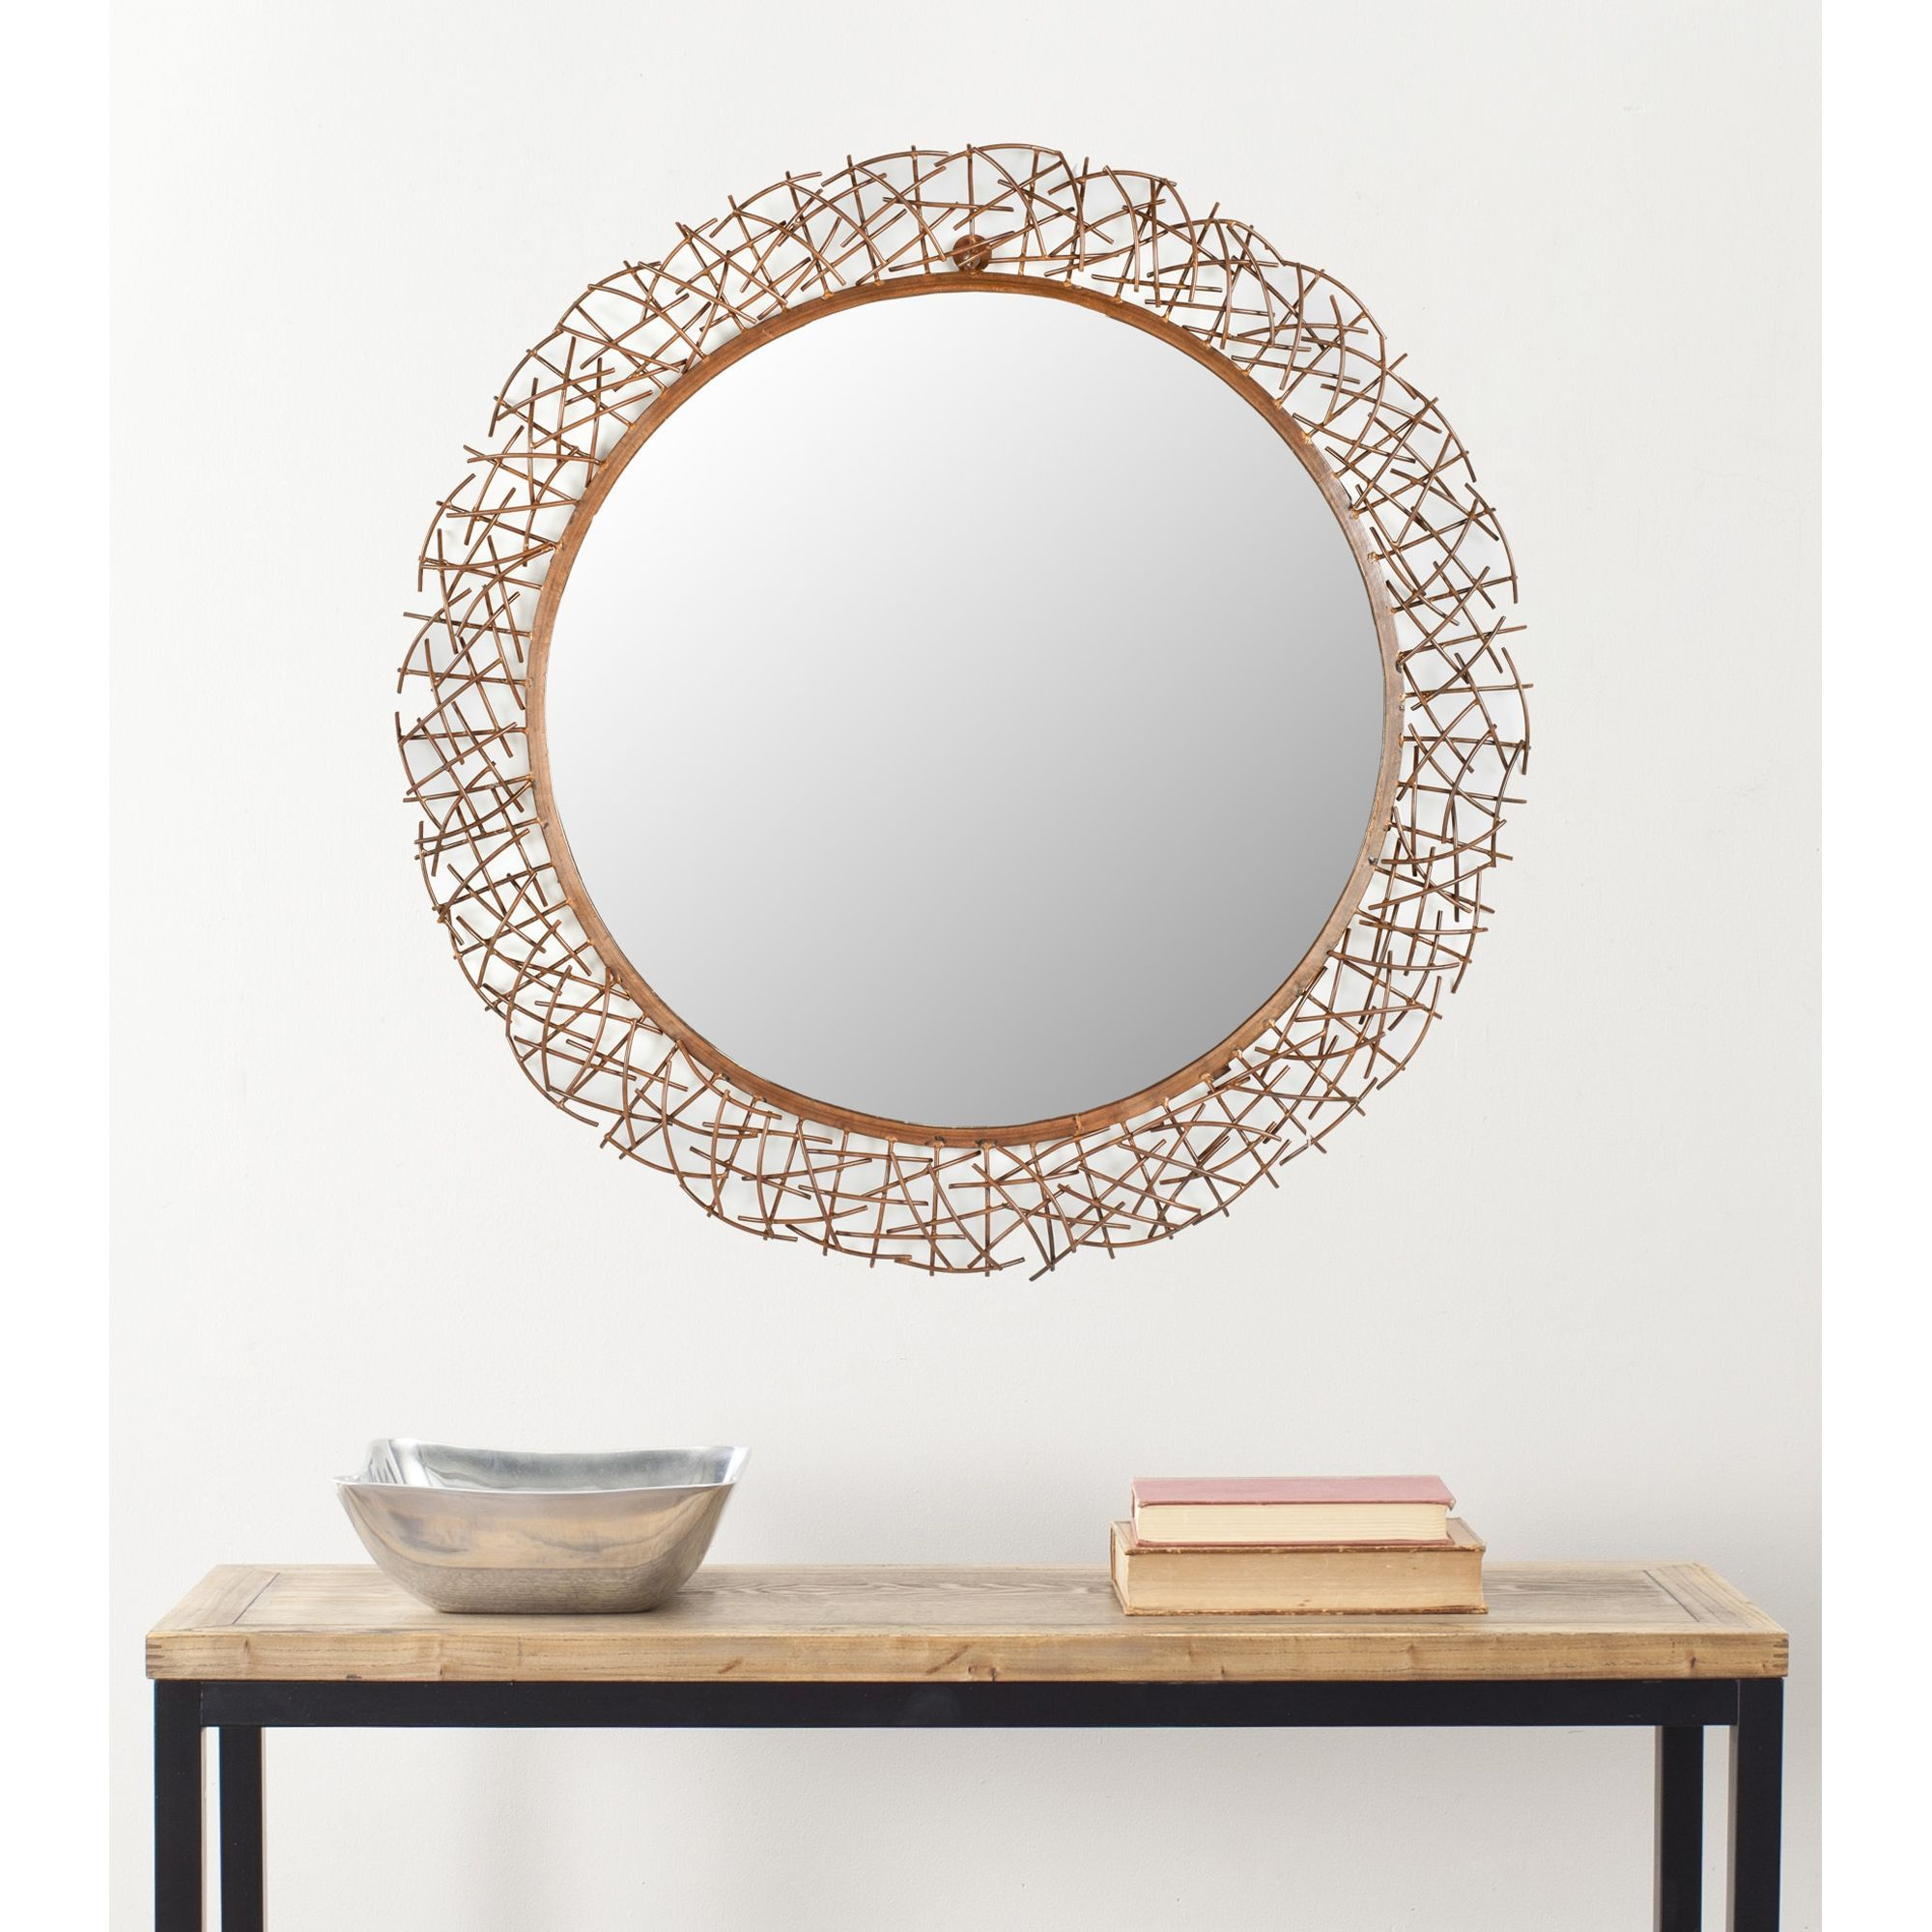 Safavieh Handmade Art Twigs Copper 29 Inch Round Decorative Mirror 29 X 29 X 15 Twig Mirror Mirror Wall Mirror Wall Decor